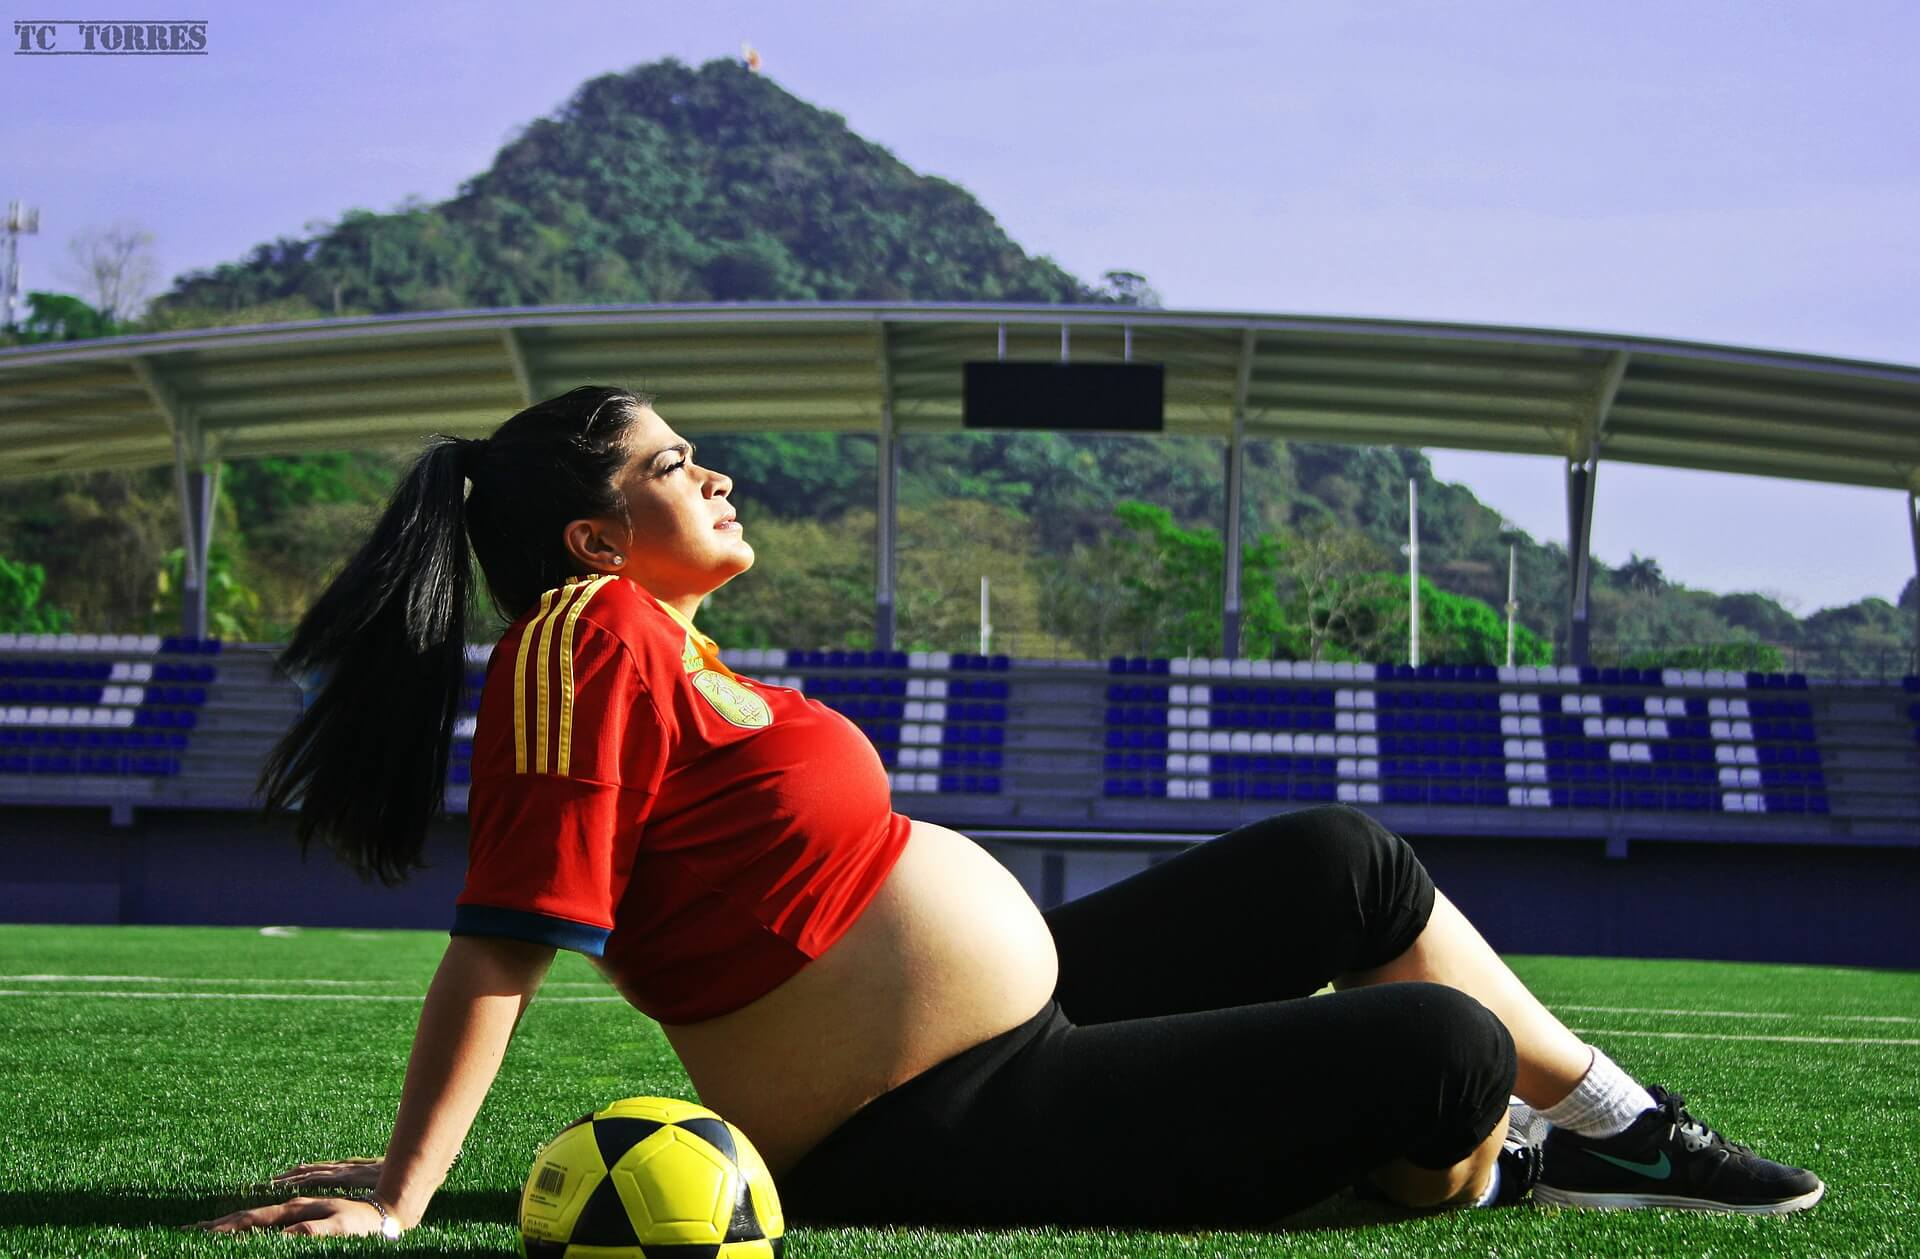 pregnant woman sitting on soccer field